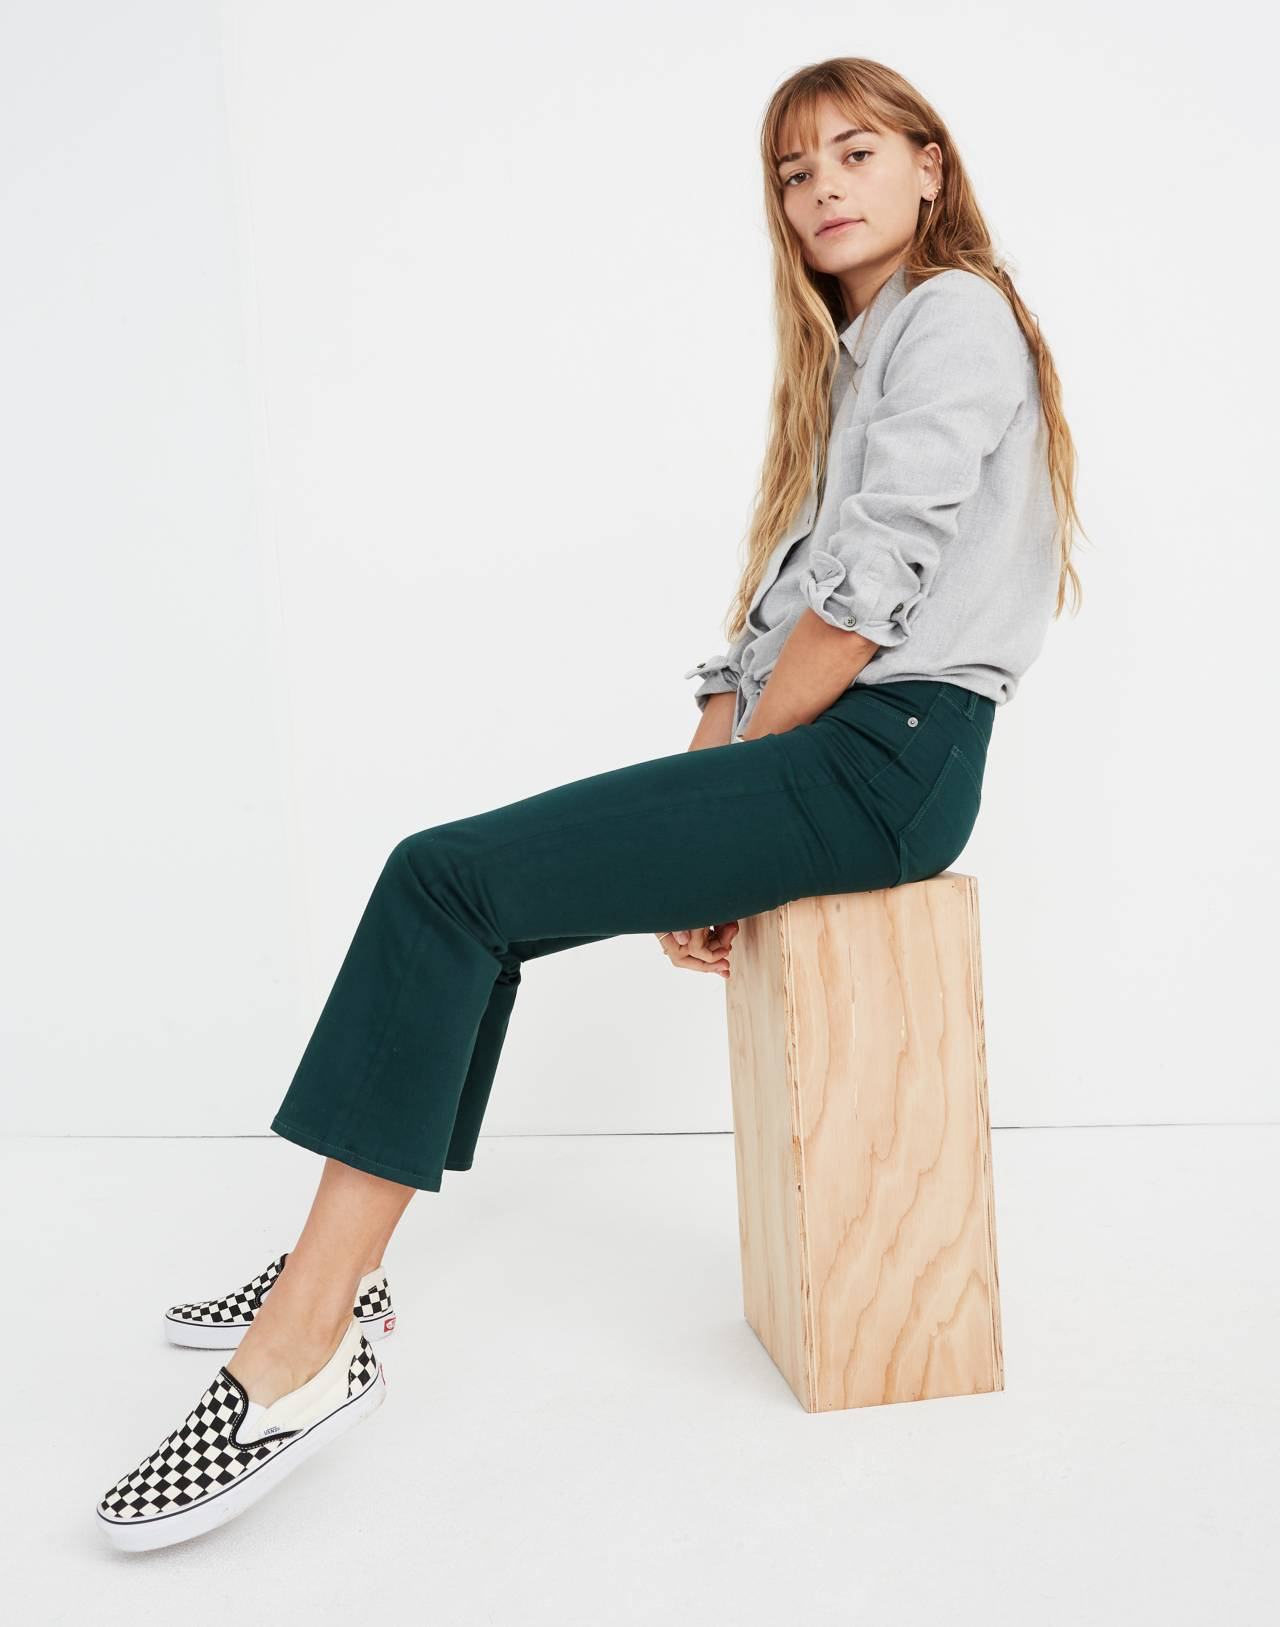 Cali Demi-Boot Sateen Jeans in smoky spruce image 2